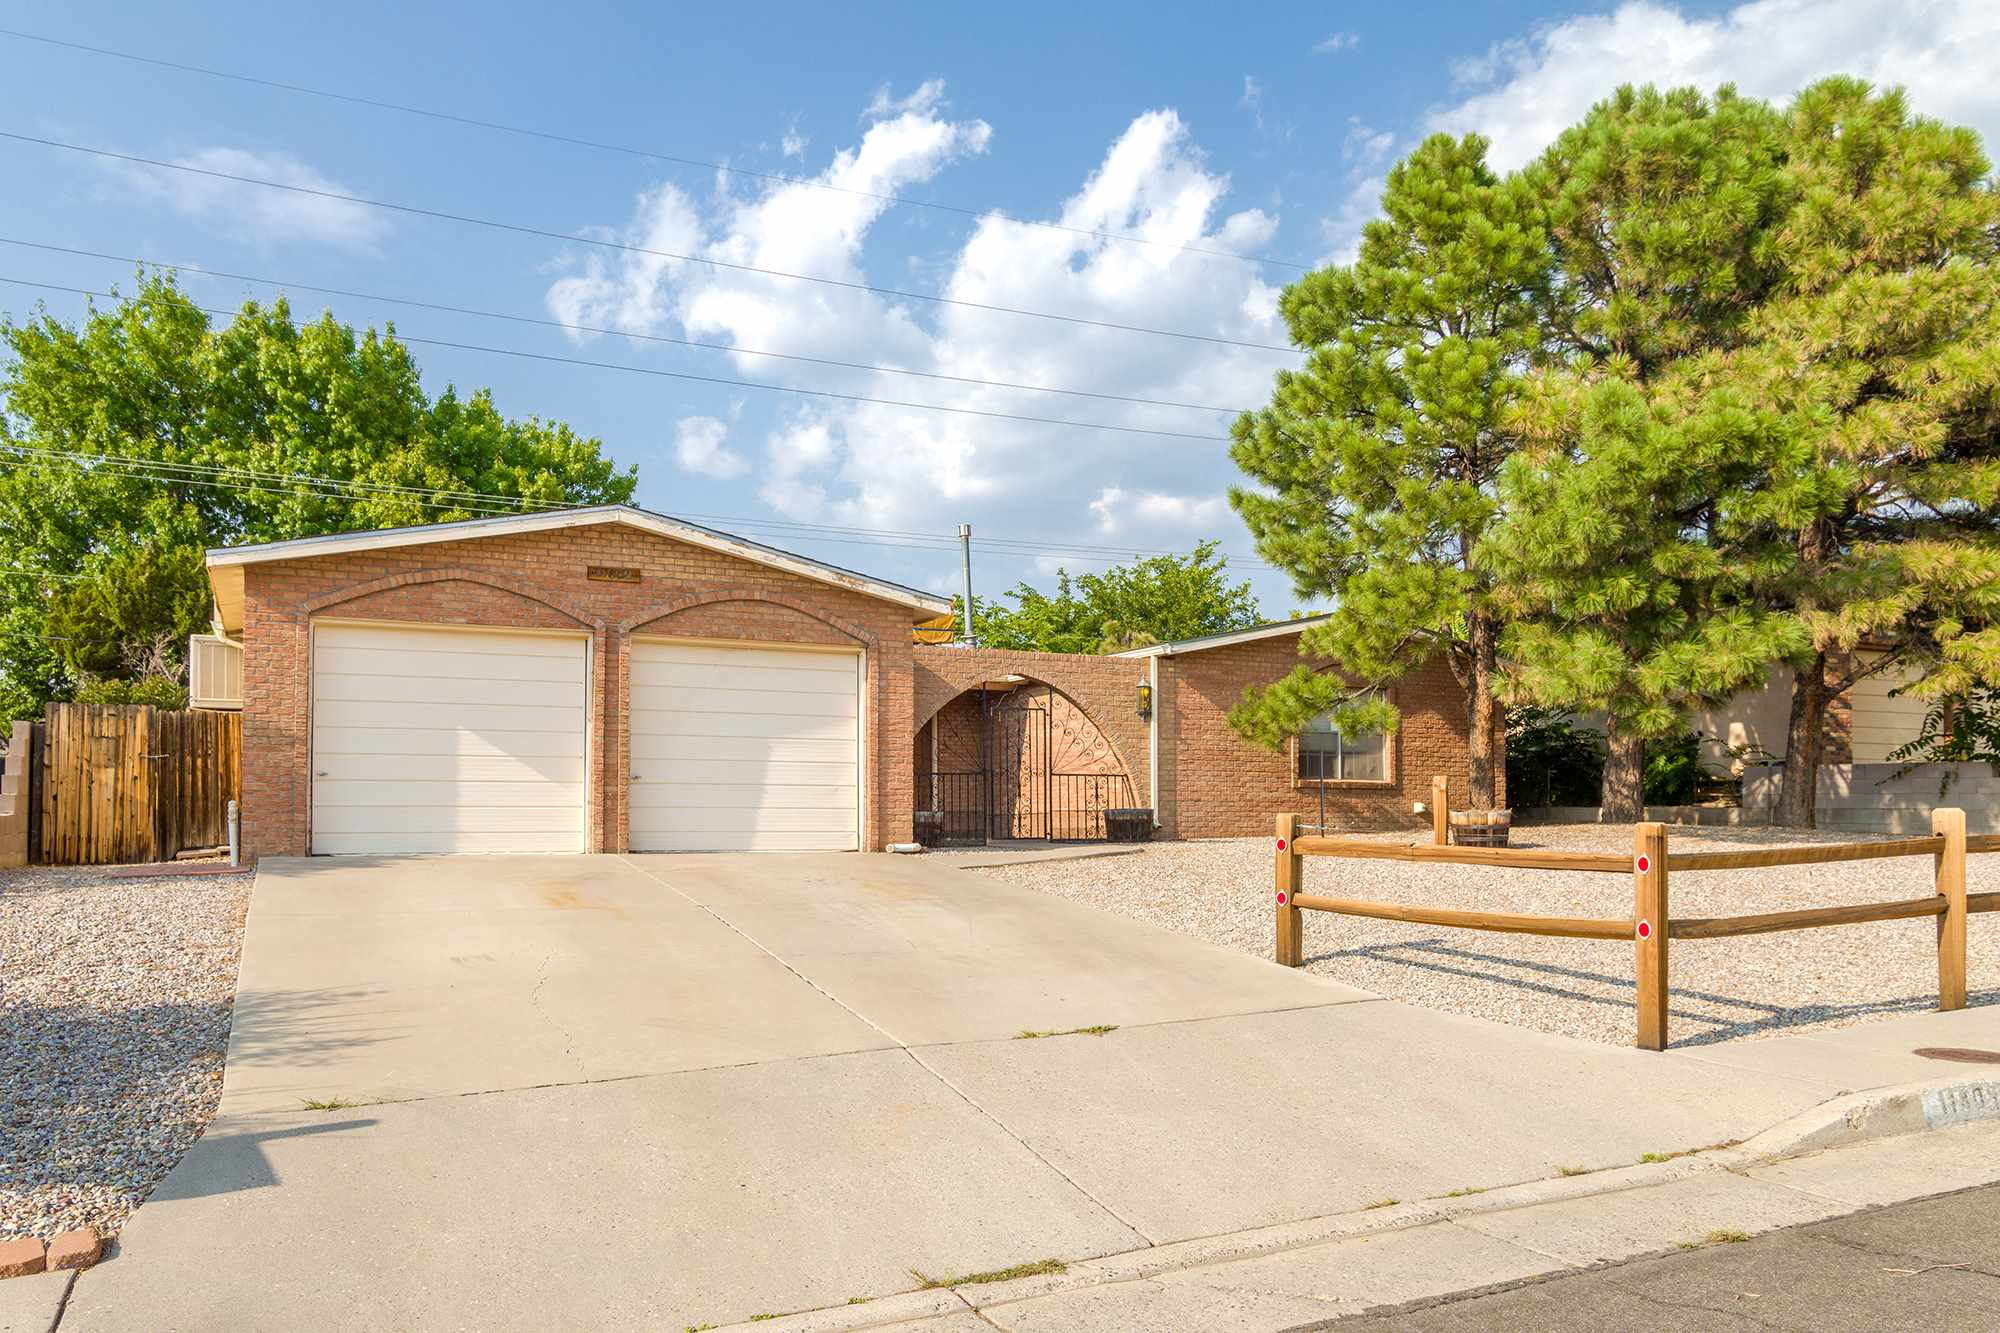 Location! Location! Wonderful super clean move in ready 3bed/2bath 2 car garage home in the Northeast Heights. Large bedrooms, 2 living areas, huge xeriscaped front and back yards. This property checks all the boxes. The garage is finished and has heat and cooling too!